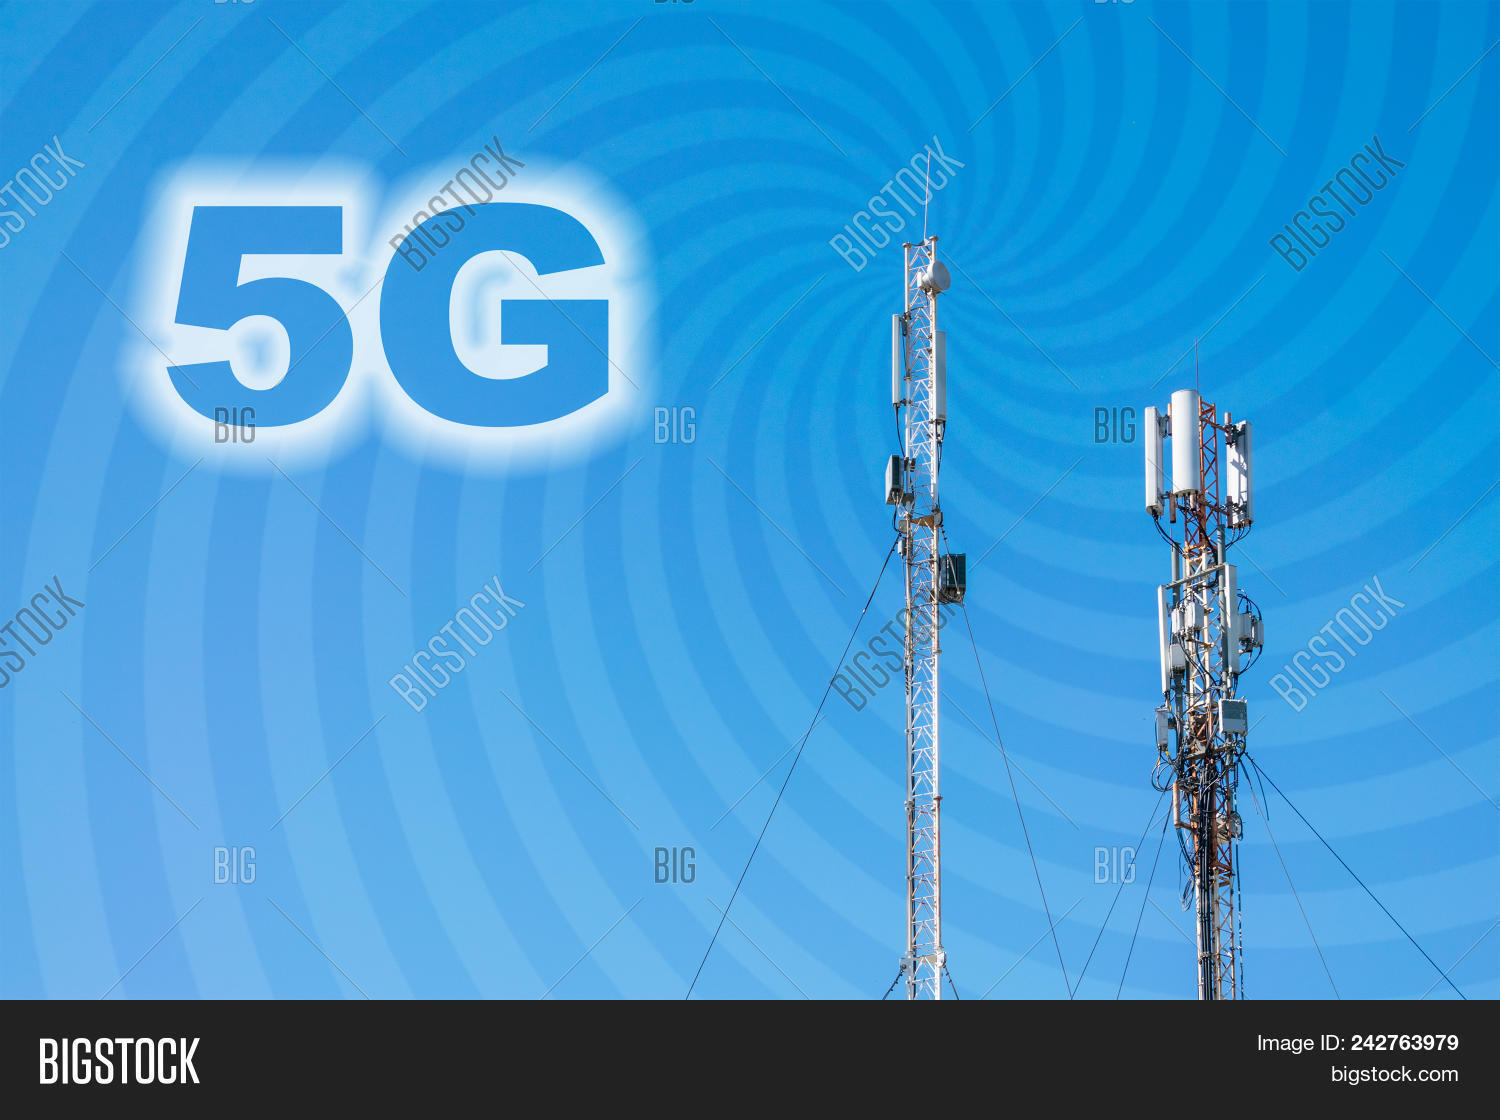 3g,4g,5g,antenna,background,base,blue,broadcast,broadcasting,cell,cellular,city,communication,concept,connection,data,development,digital,equipment,frequency,global,gsm,high,industry,internet,mast,metal,mobile,network,phone,radio,ray,signal,sky,speed,station,steel,structure,technology,telecommunication,telephone,tower,transmission,transmitter,wifi,wireless